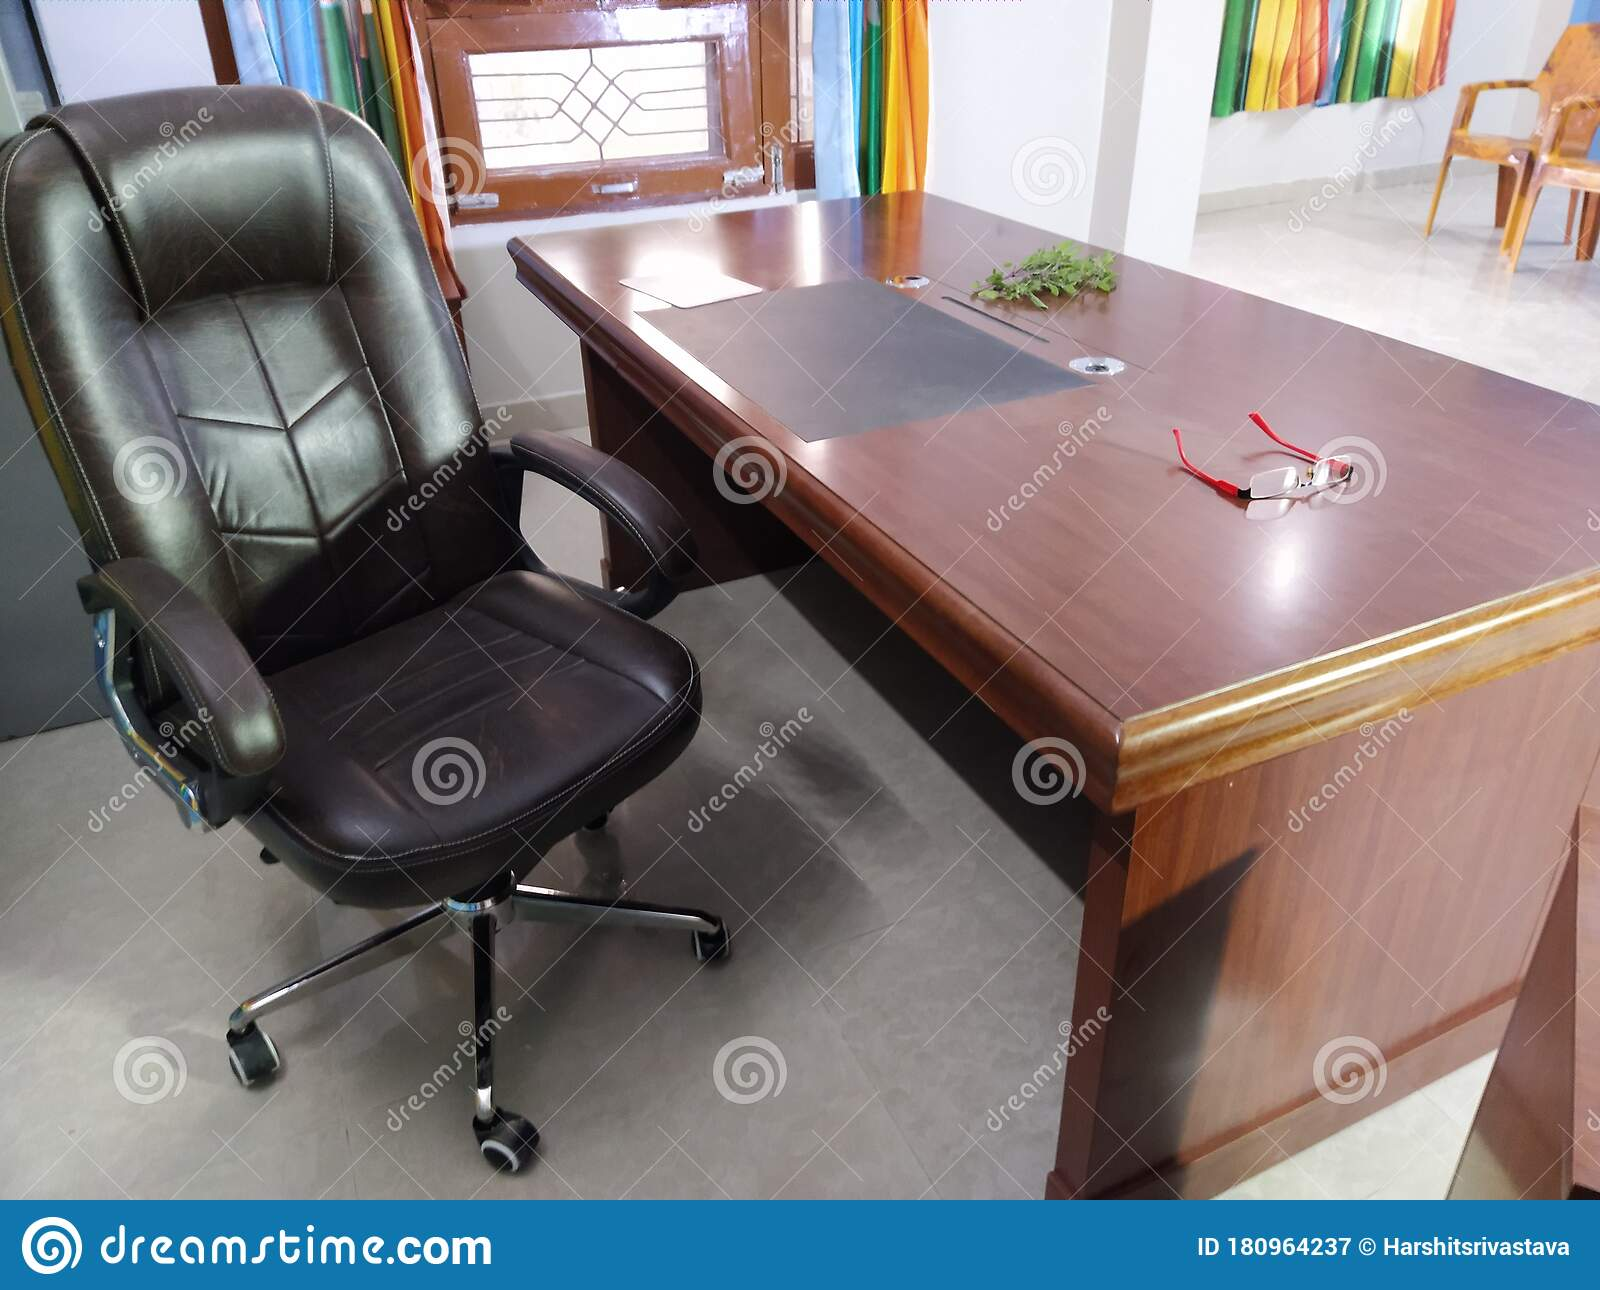 An Interior Of The Home Office With An Executive Chair And The Big Table Stock Image Image Of Contemporary Manager 180964237